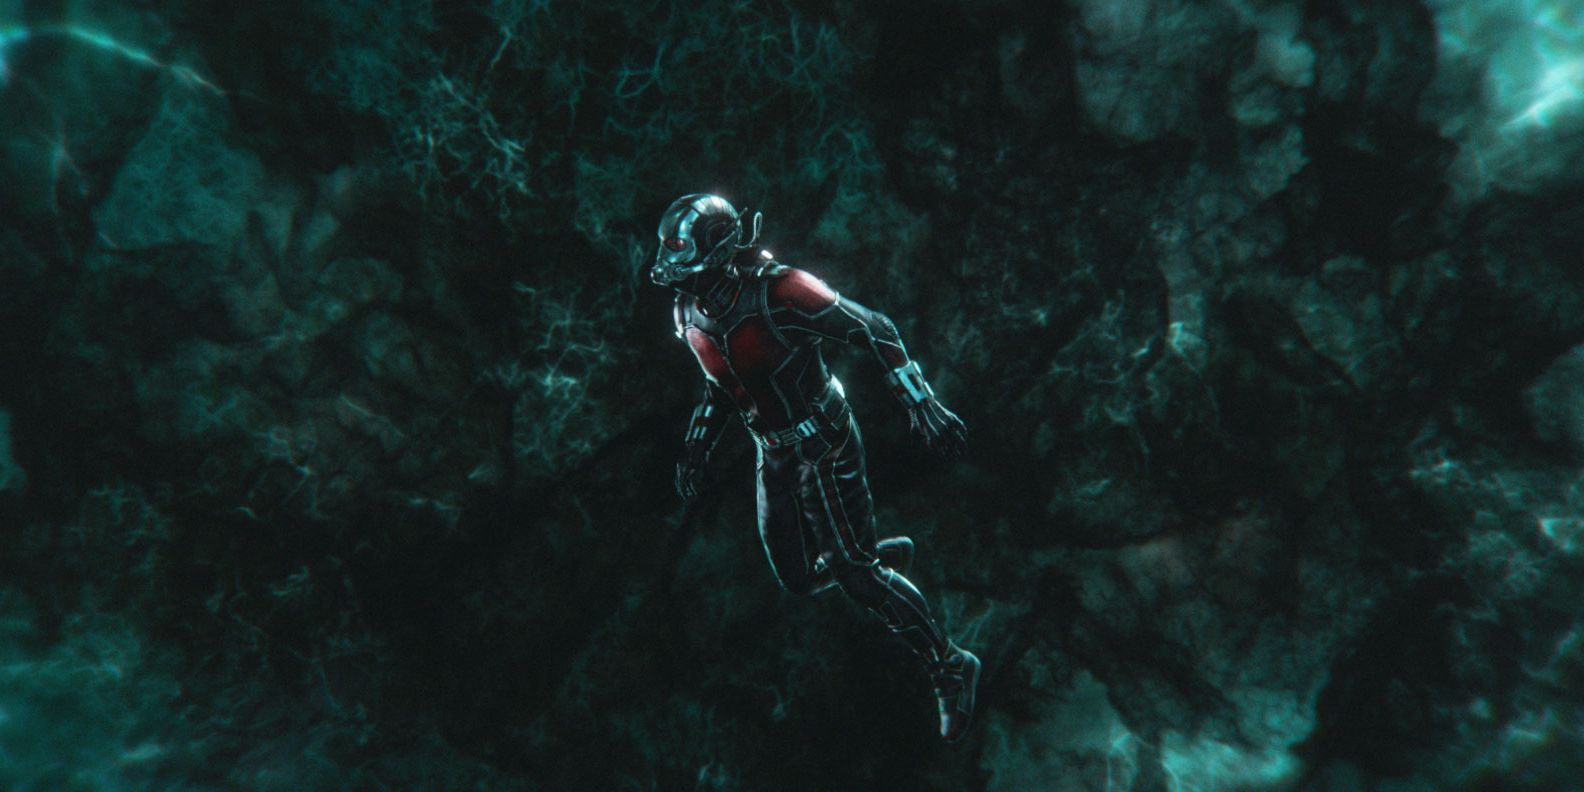 Ant-Man and The Wasp - Scott Lang in the Quantum Realm